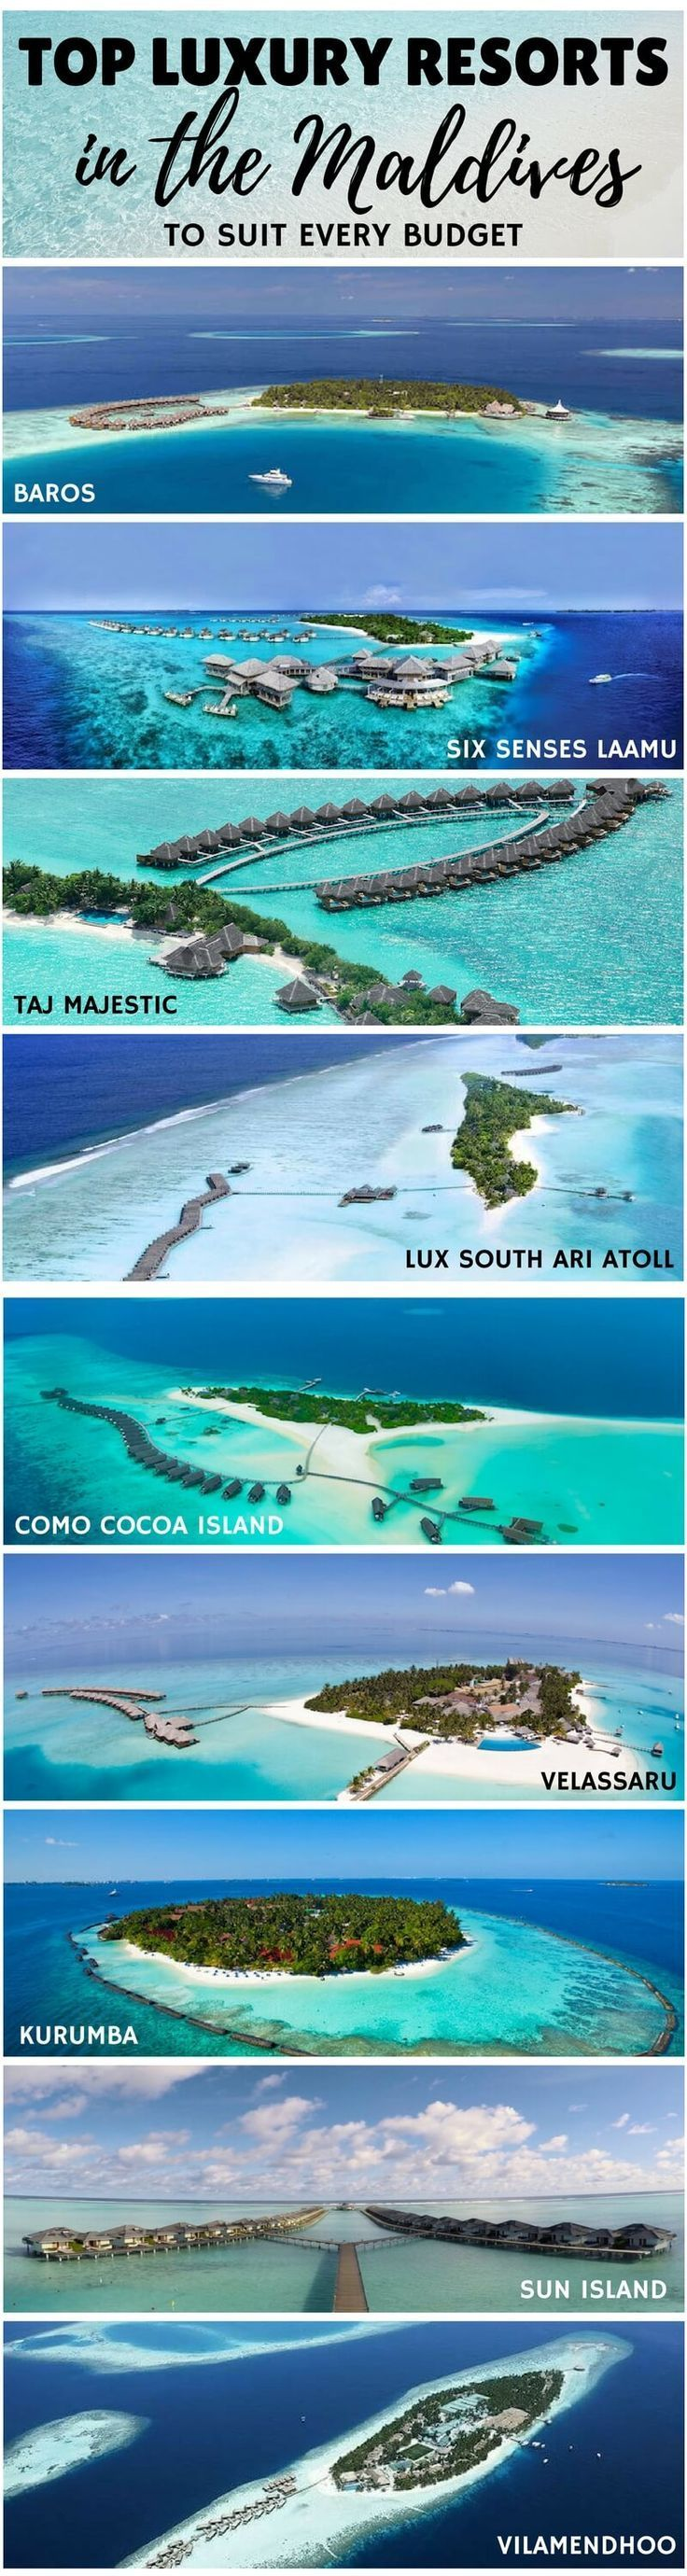 The Top Luxury Resorts in the Maldives. Maldives on a Budget. Travel in South Asia.